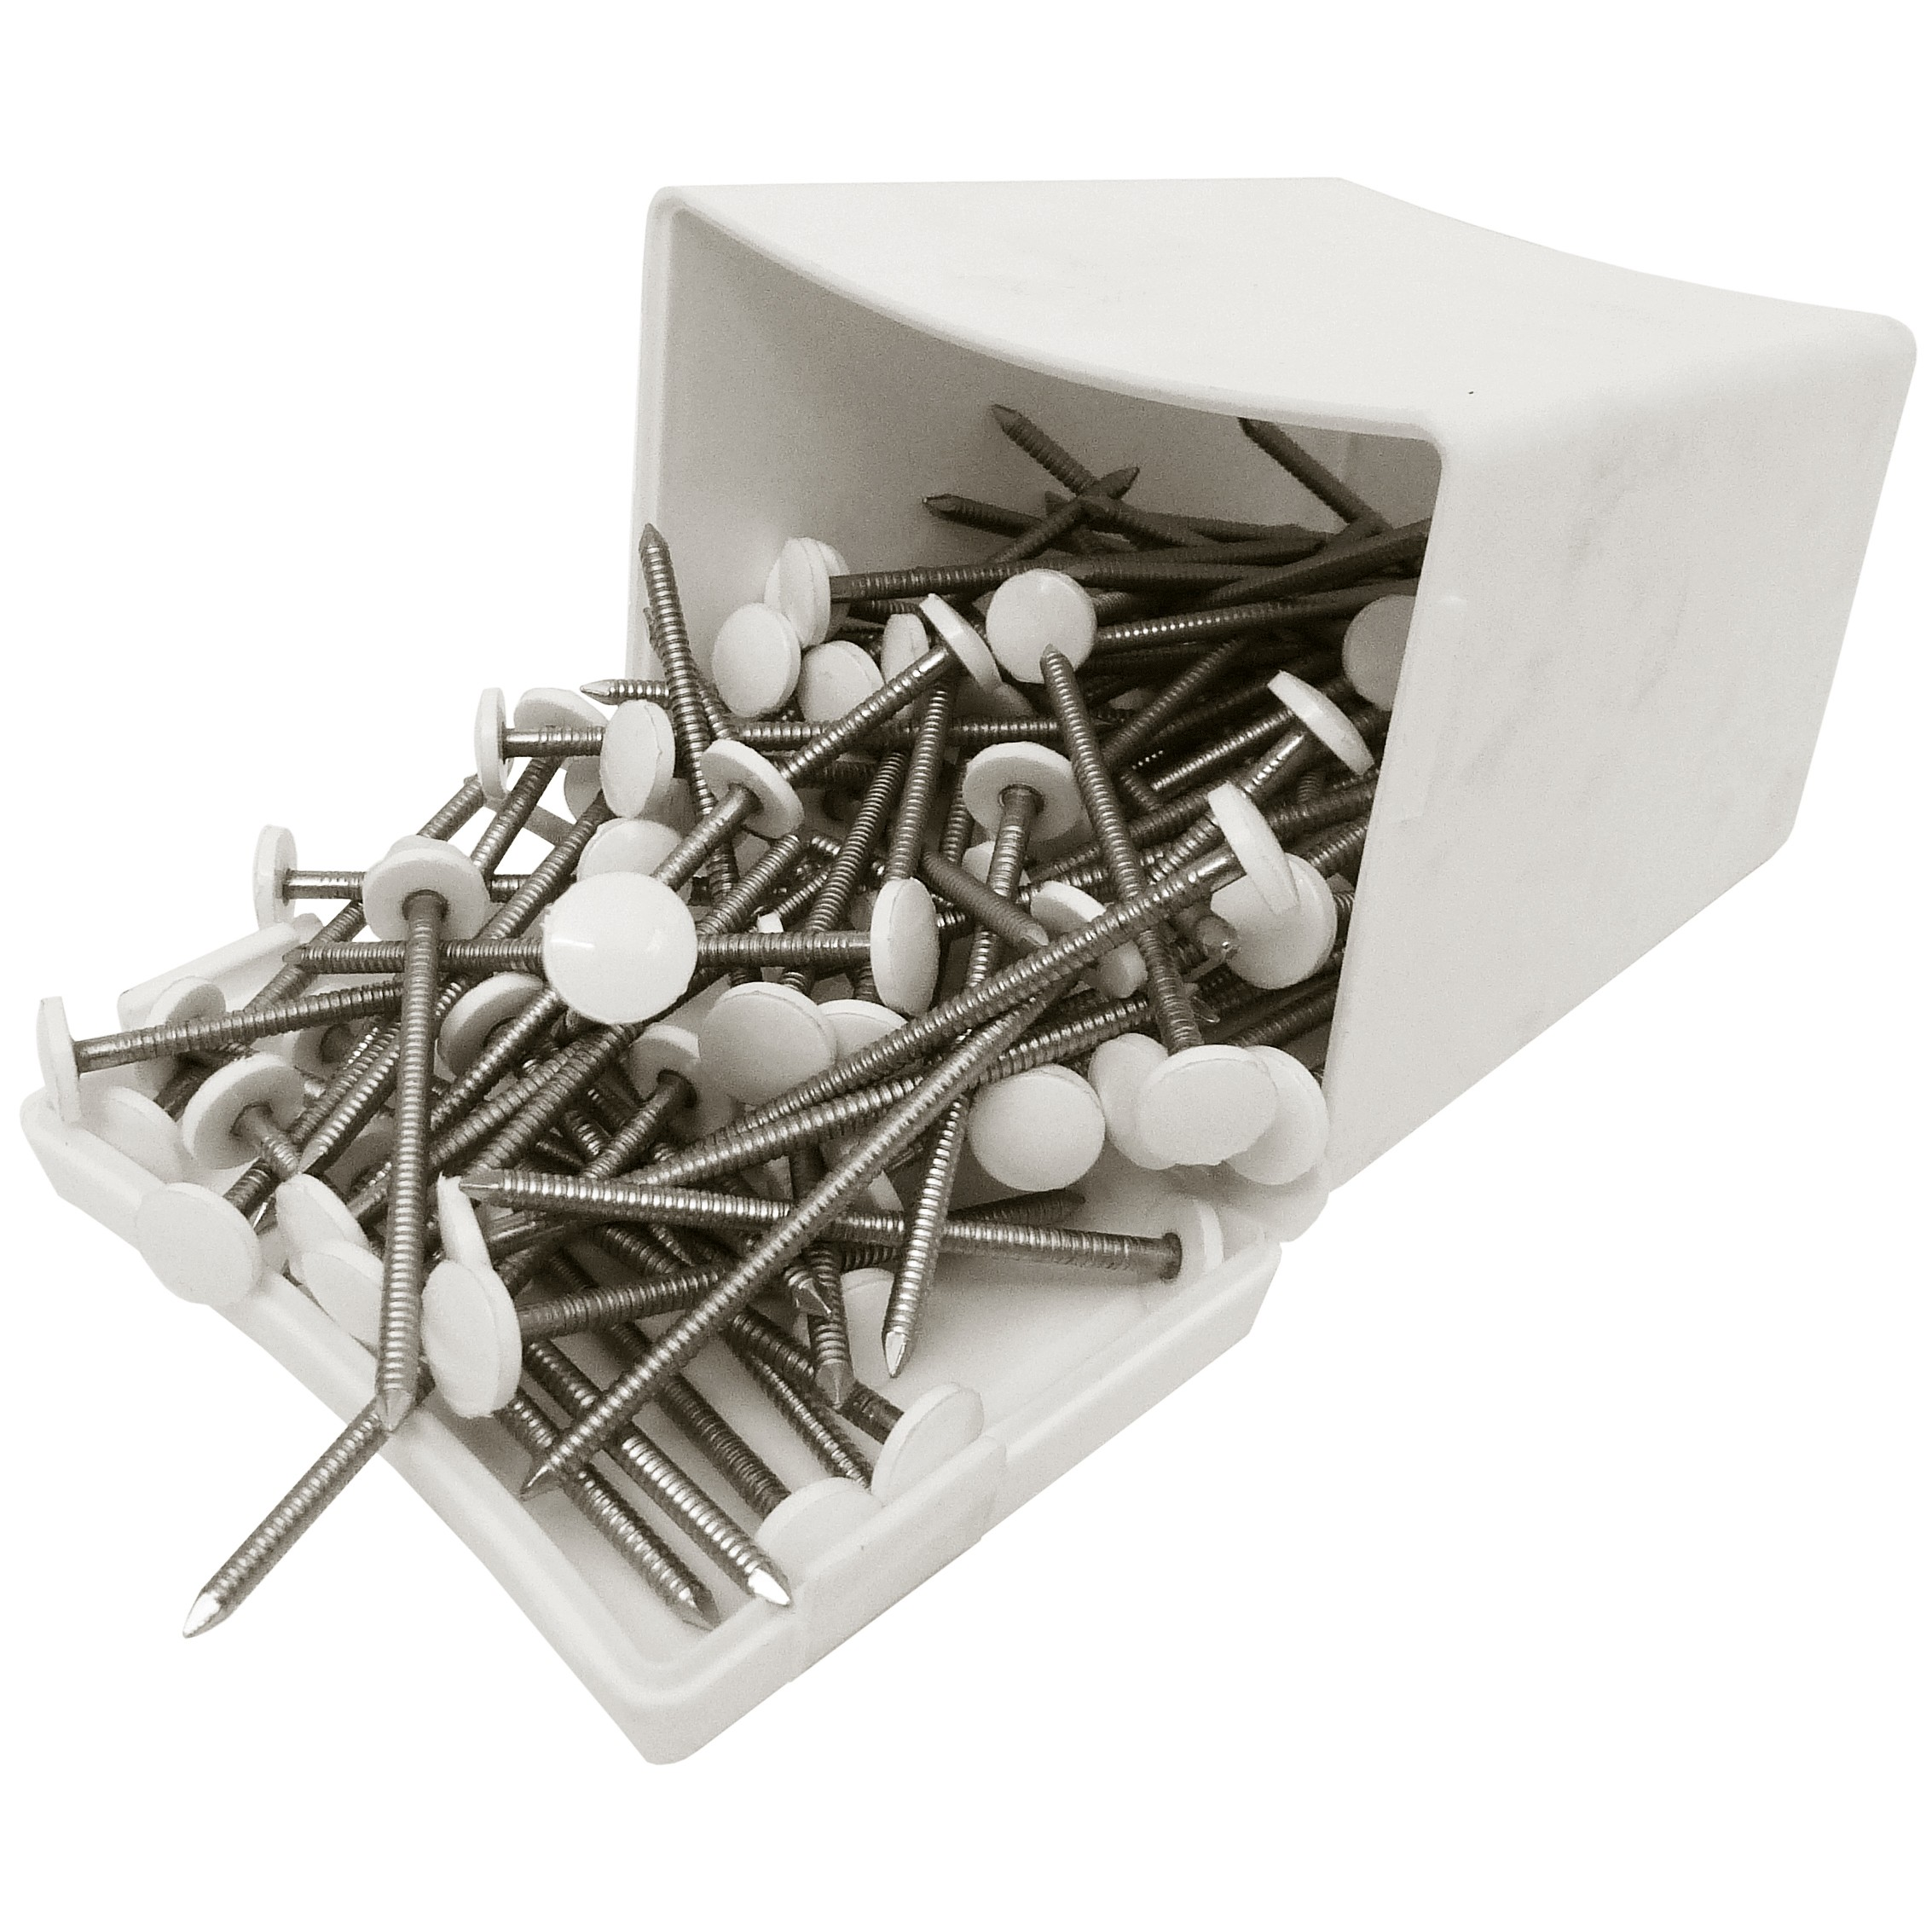 Plastops Plastic Headed Nails - White, 50mm